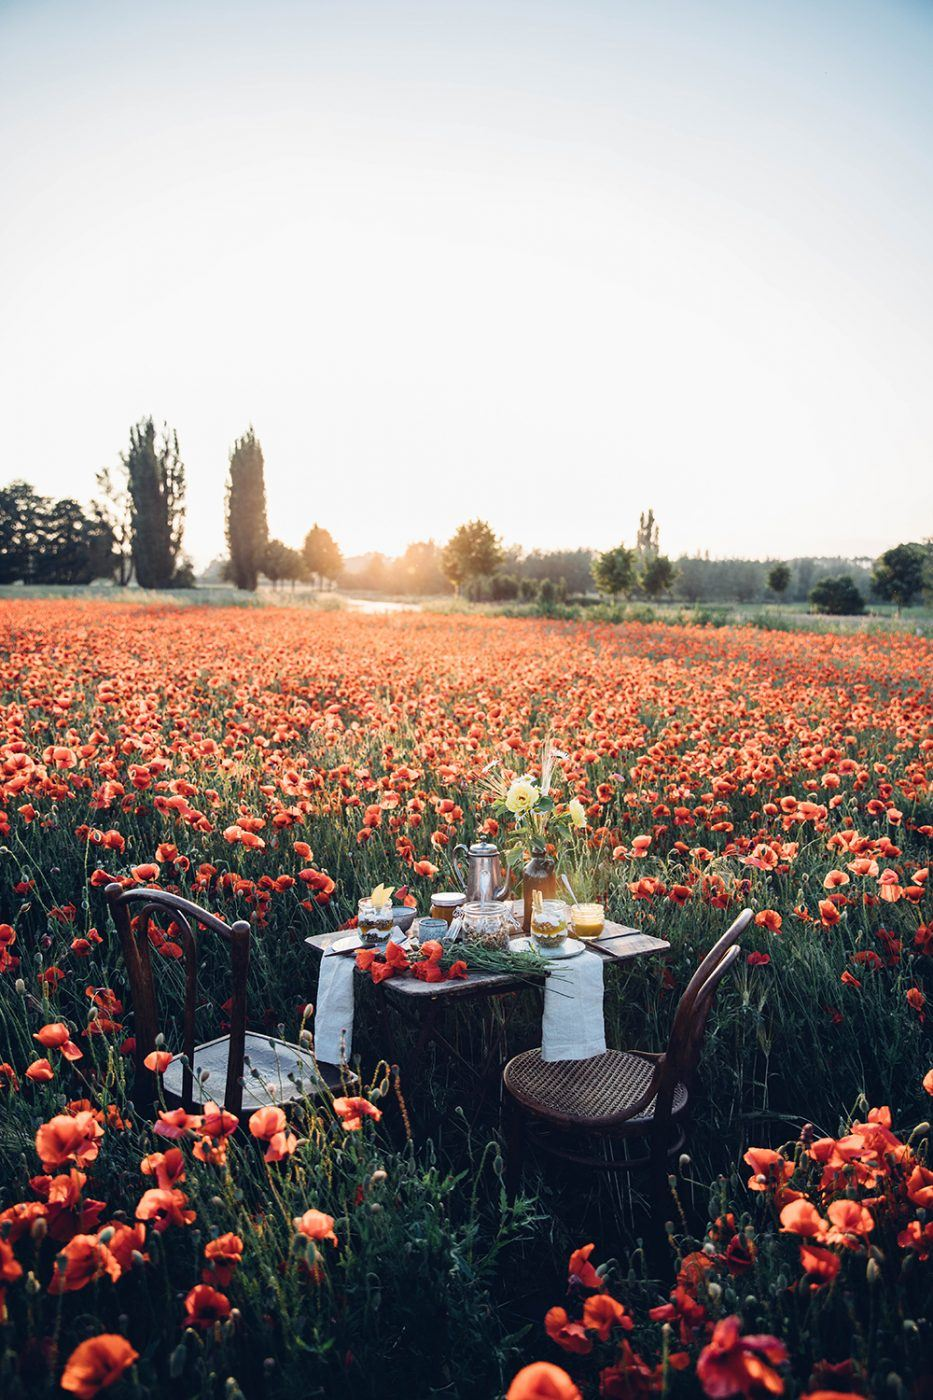 Image for Gluten-free Poppyseed Granola – A Picnic in a field of poppies